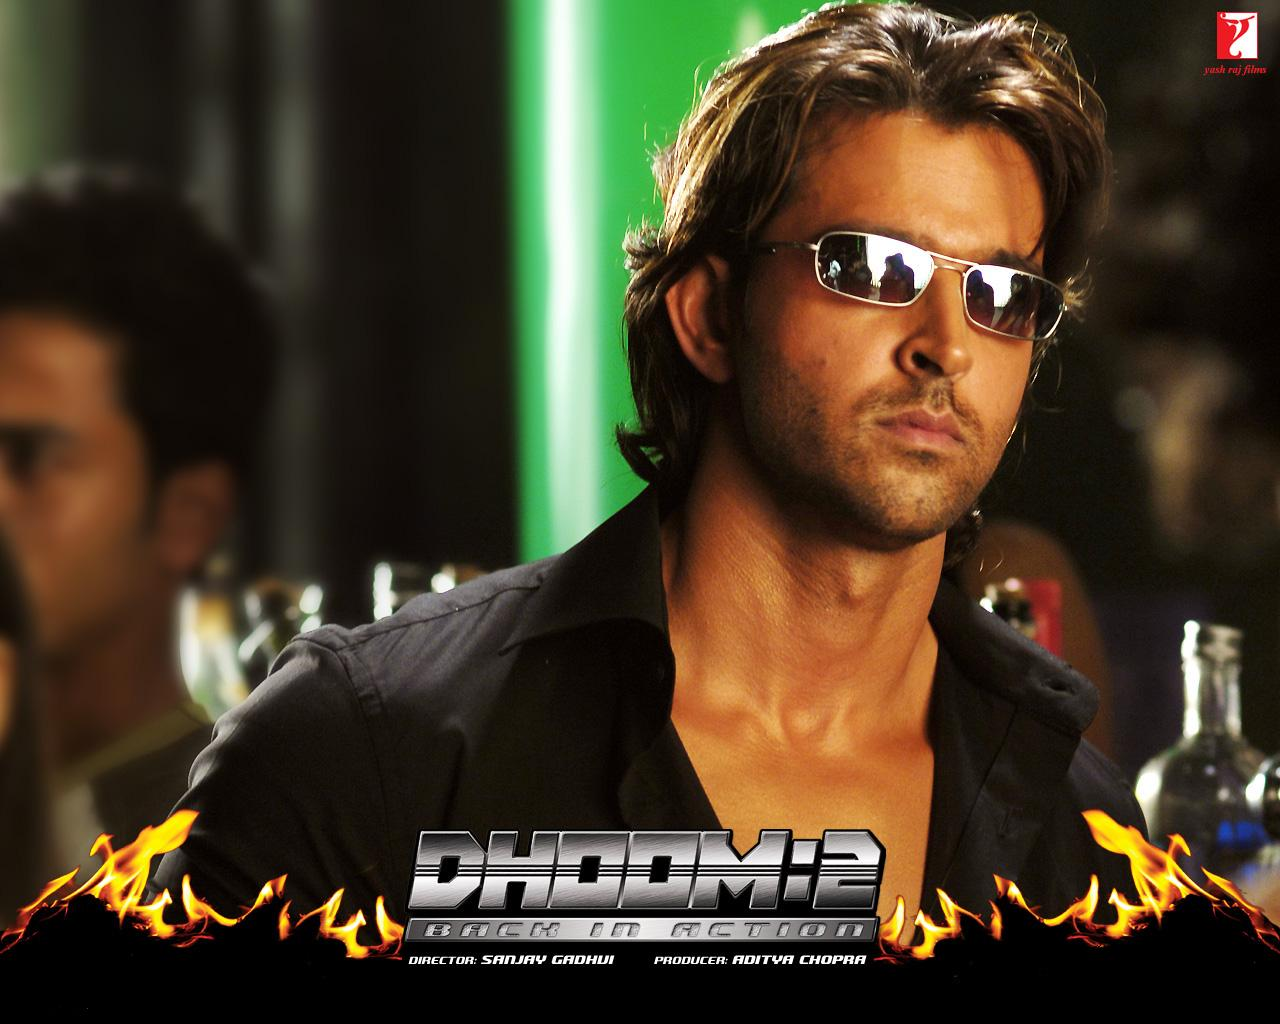 download free hd wallpapers of hrithik roshan ~ download free hd